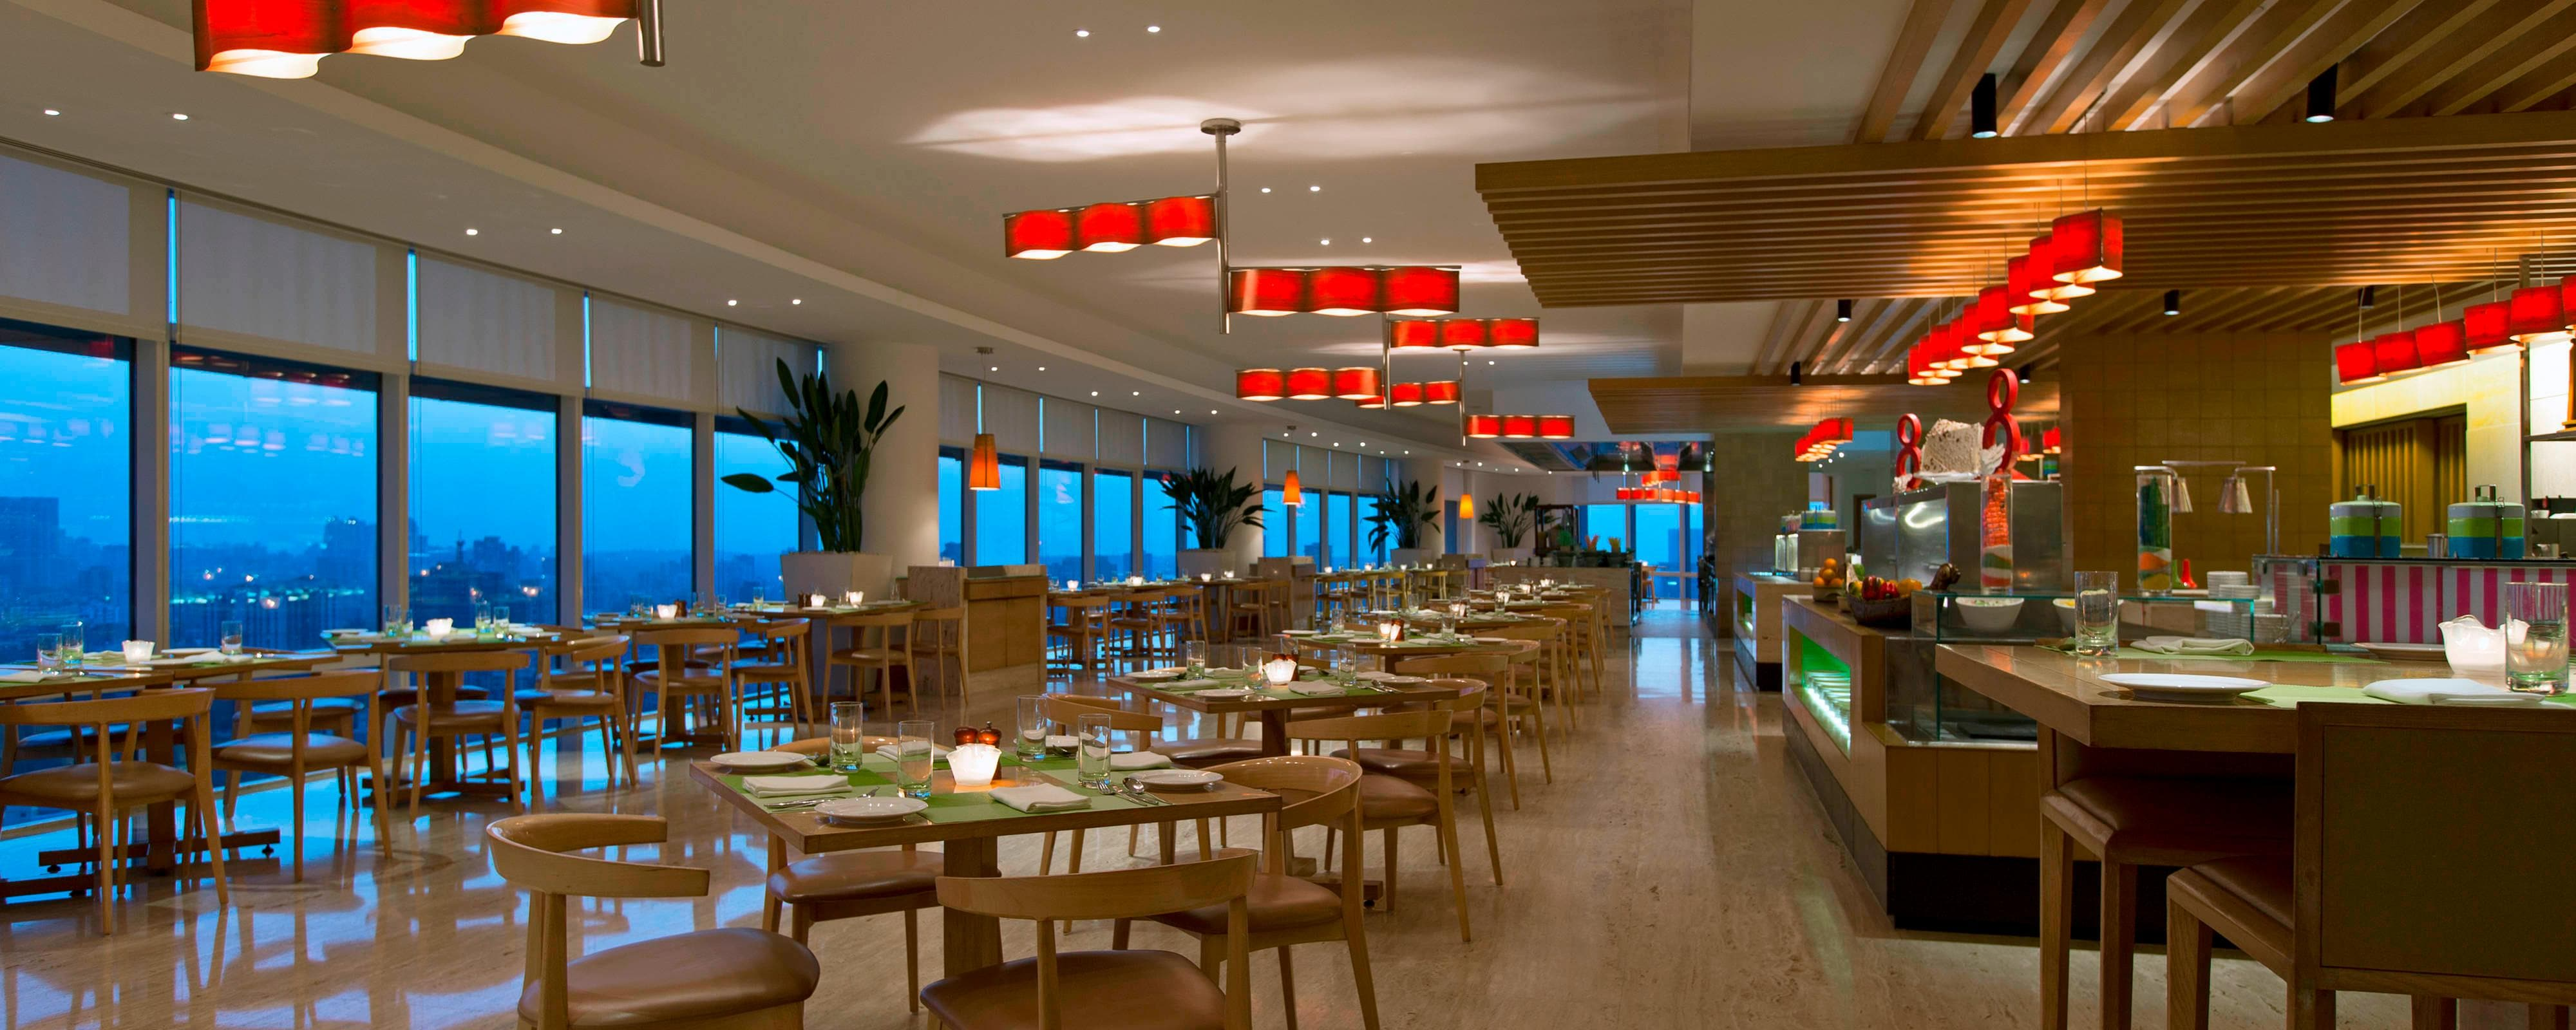 Hotel Dining Restaurants The Westin Mumbai Garden City